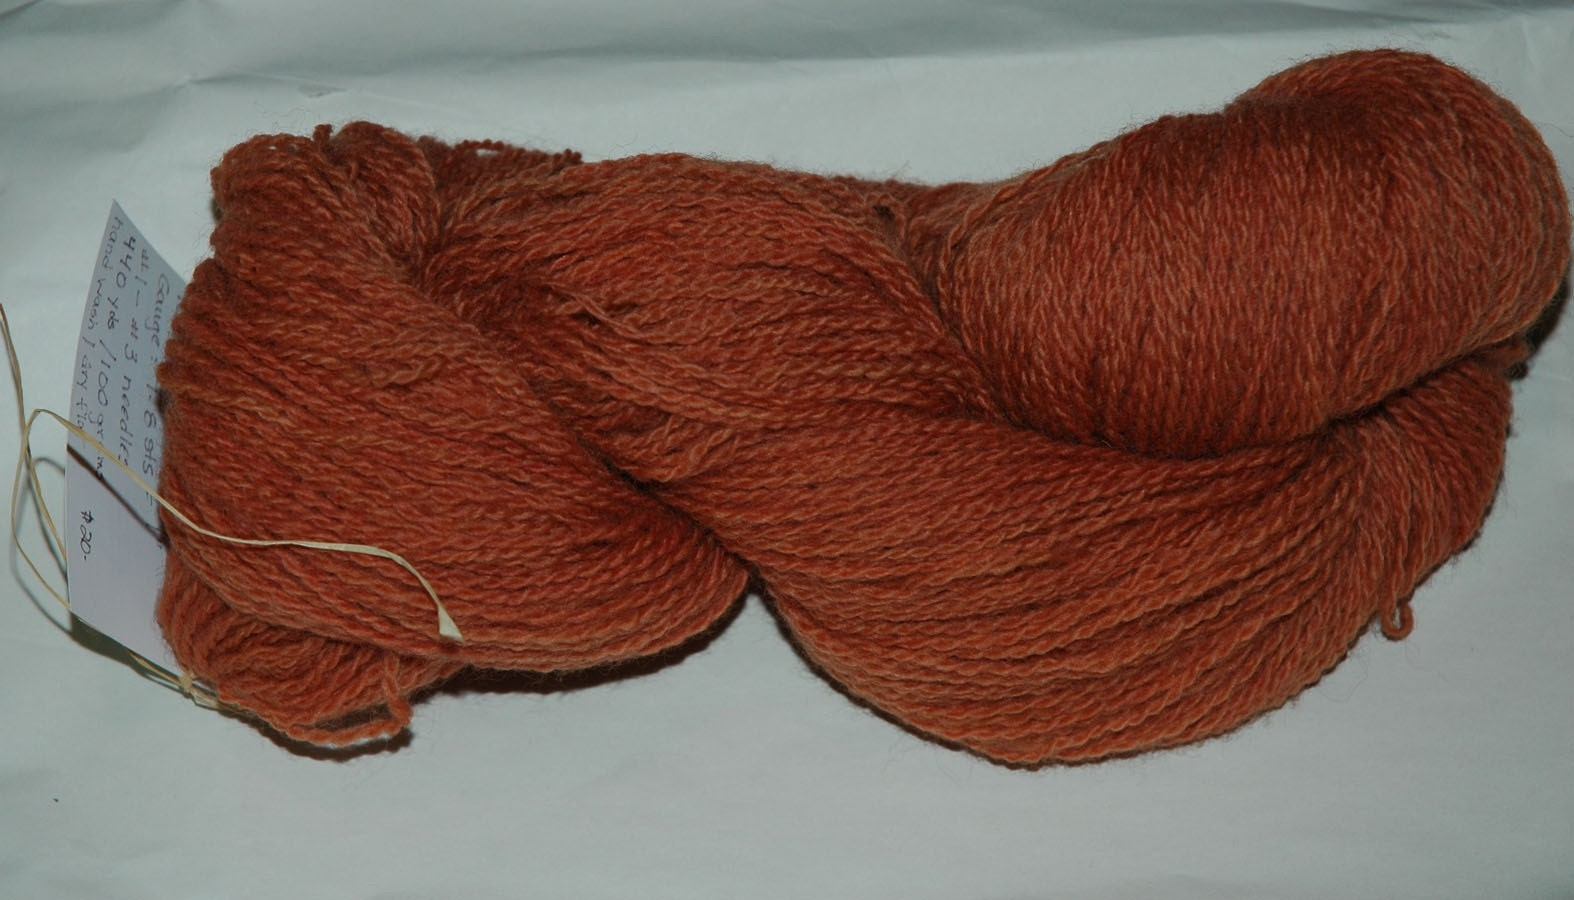 Naturally-dyed Sock Yarn, Madder Root2 - sheepsandpeeps